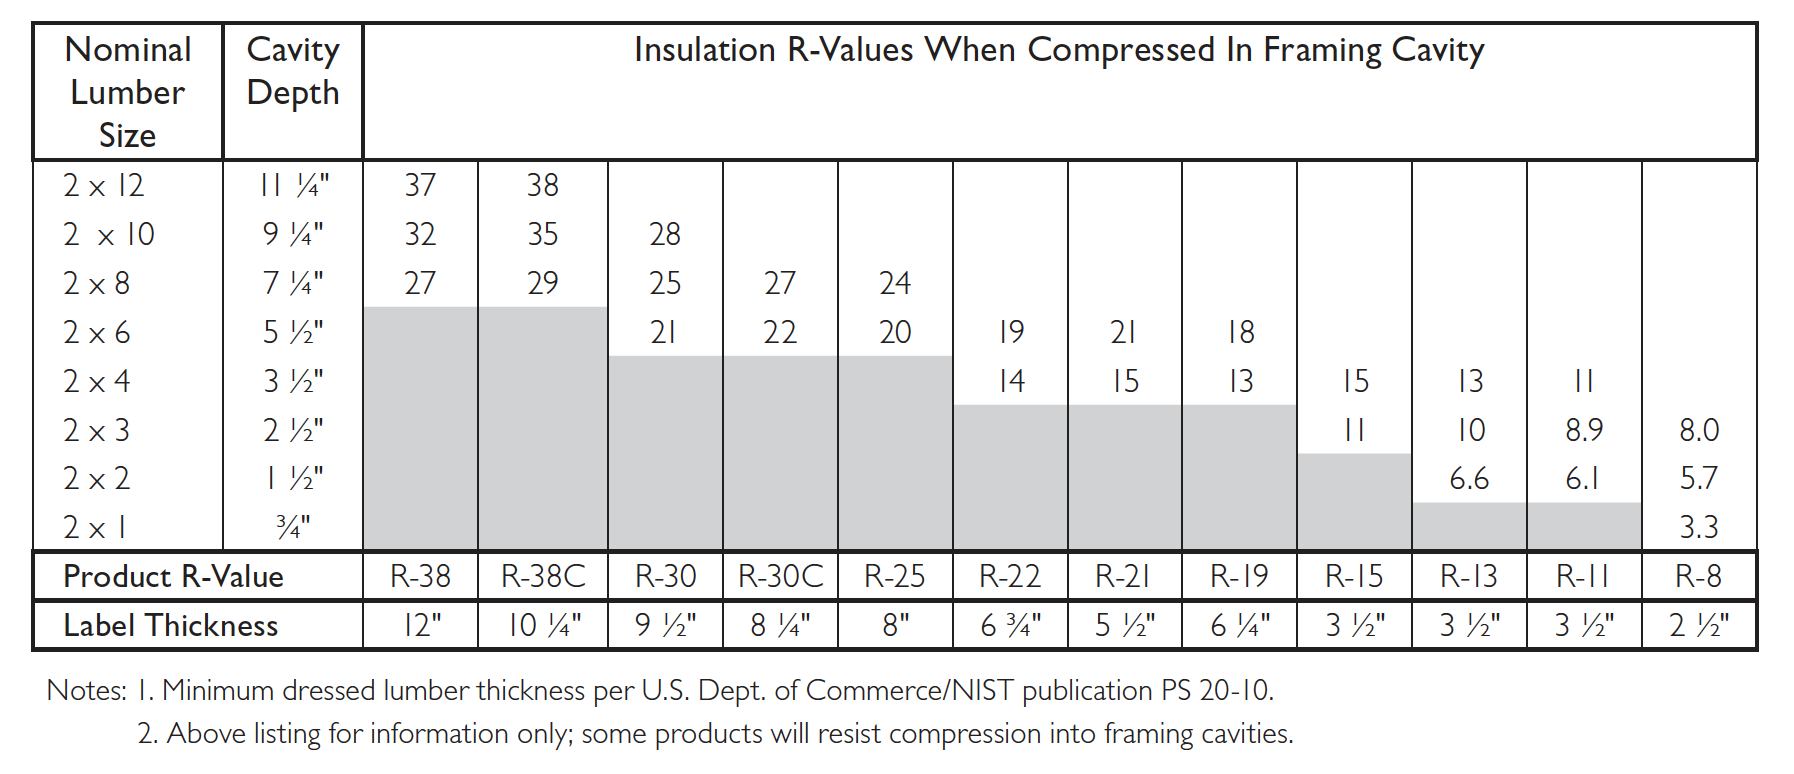 Is Compressed Fiberglass Insulation Really So Bad - Cellulose Insulation R Value